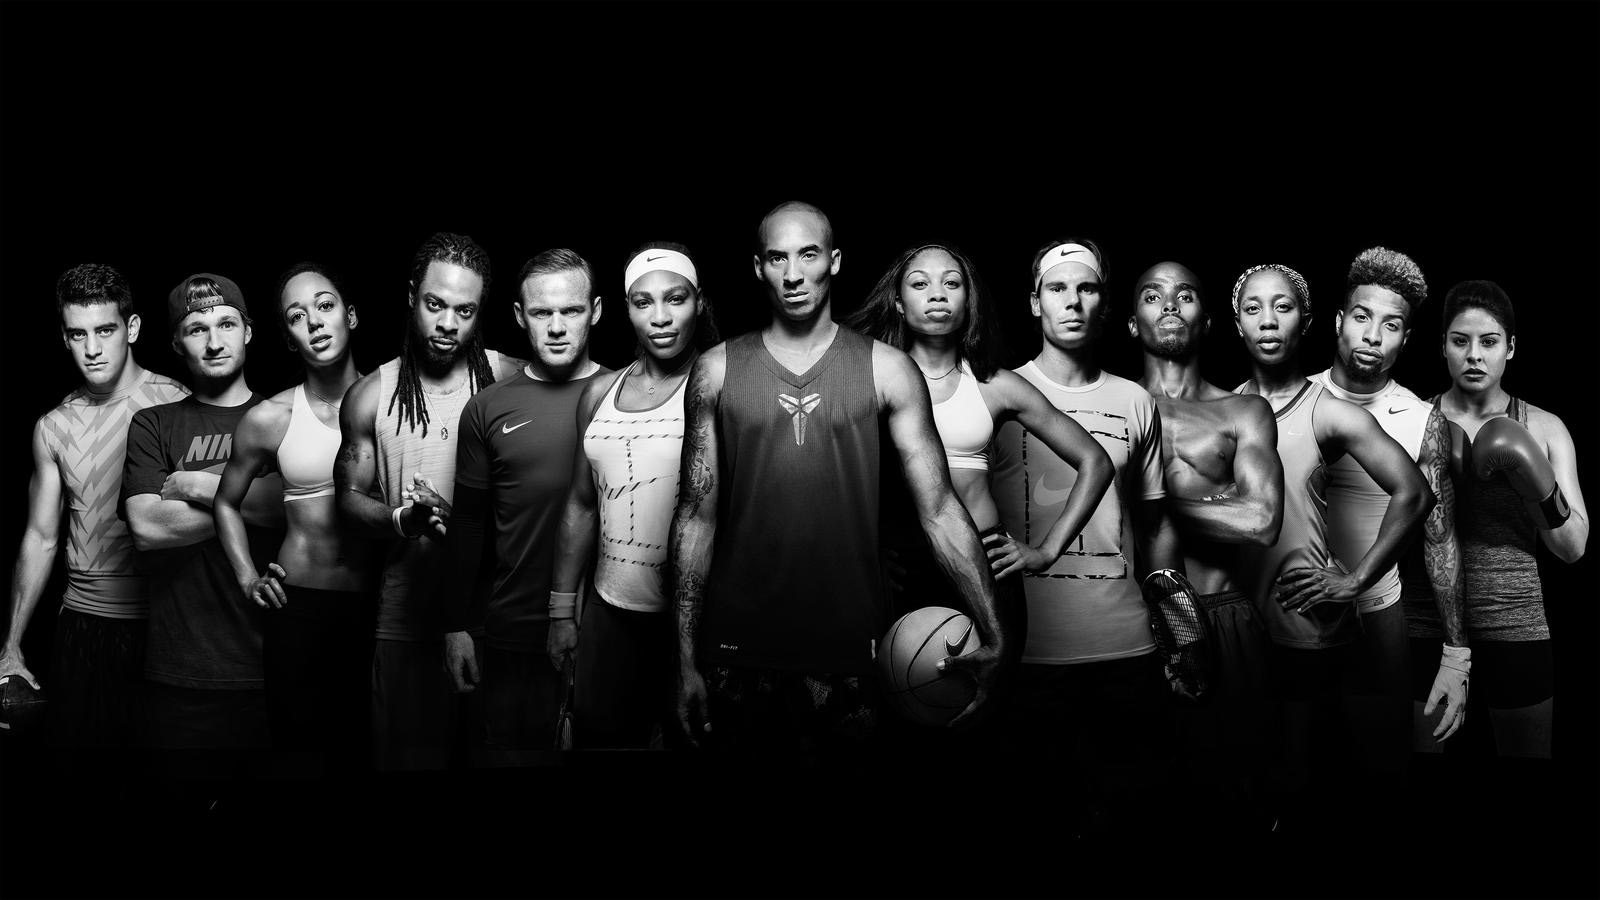 Nike Basketball Team